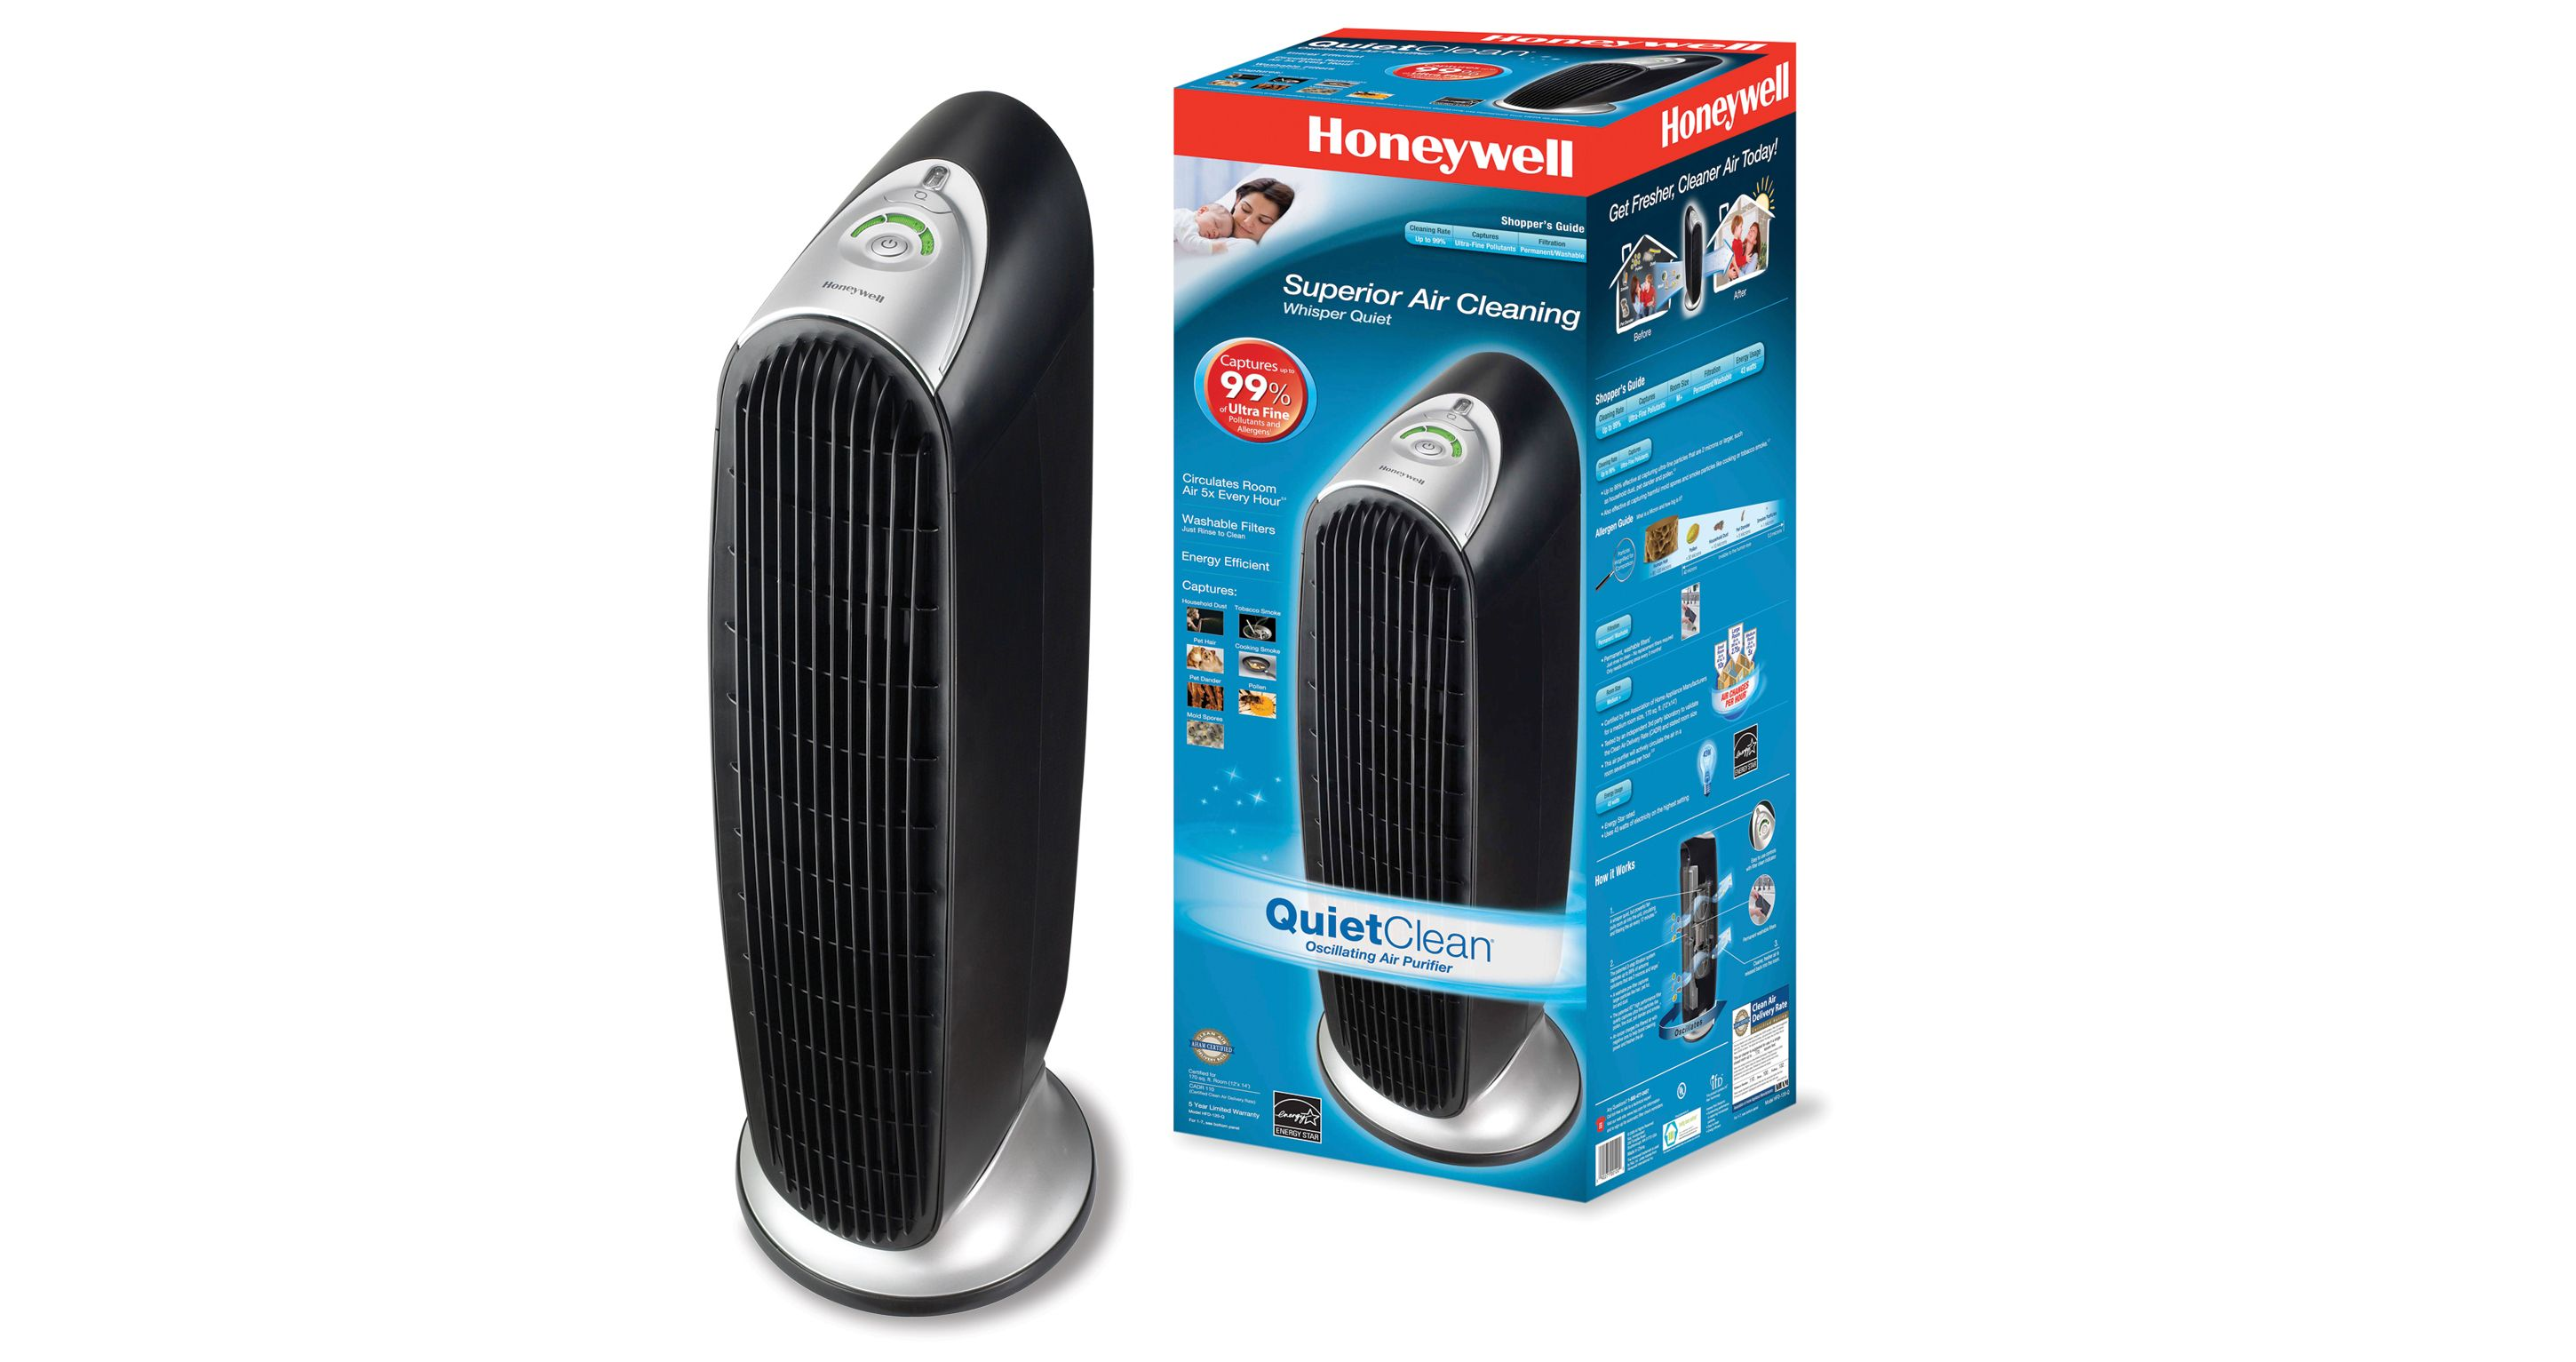 Honeywell hfd120q quietclean tower air purifier with